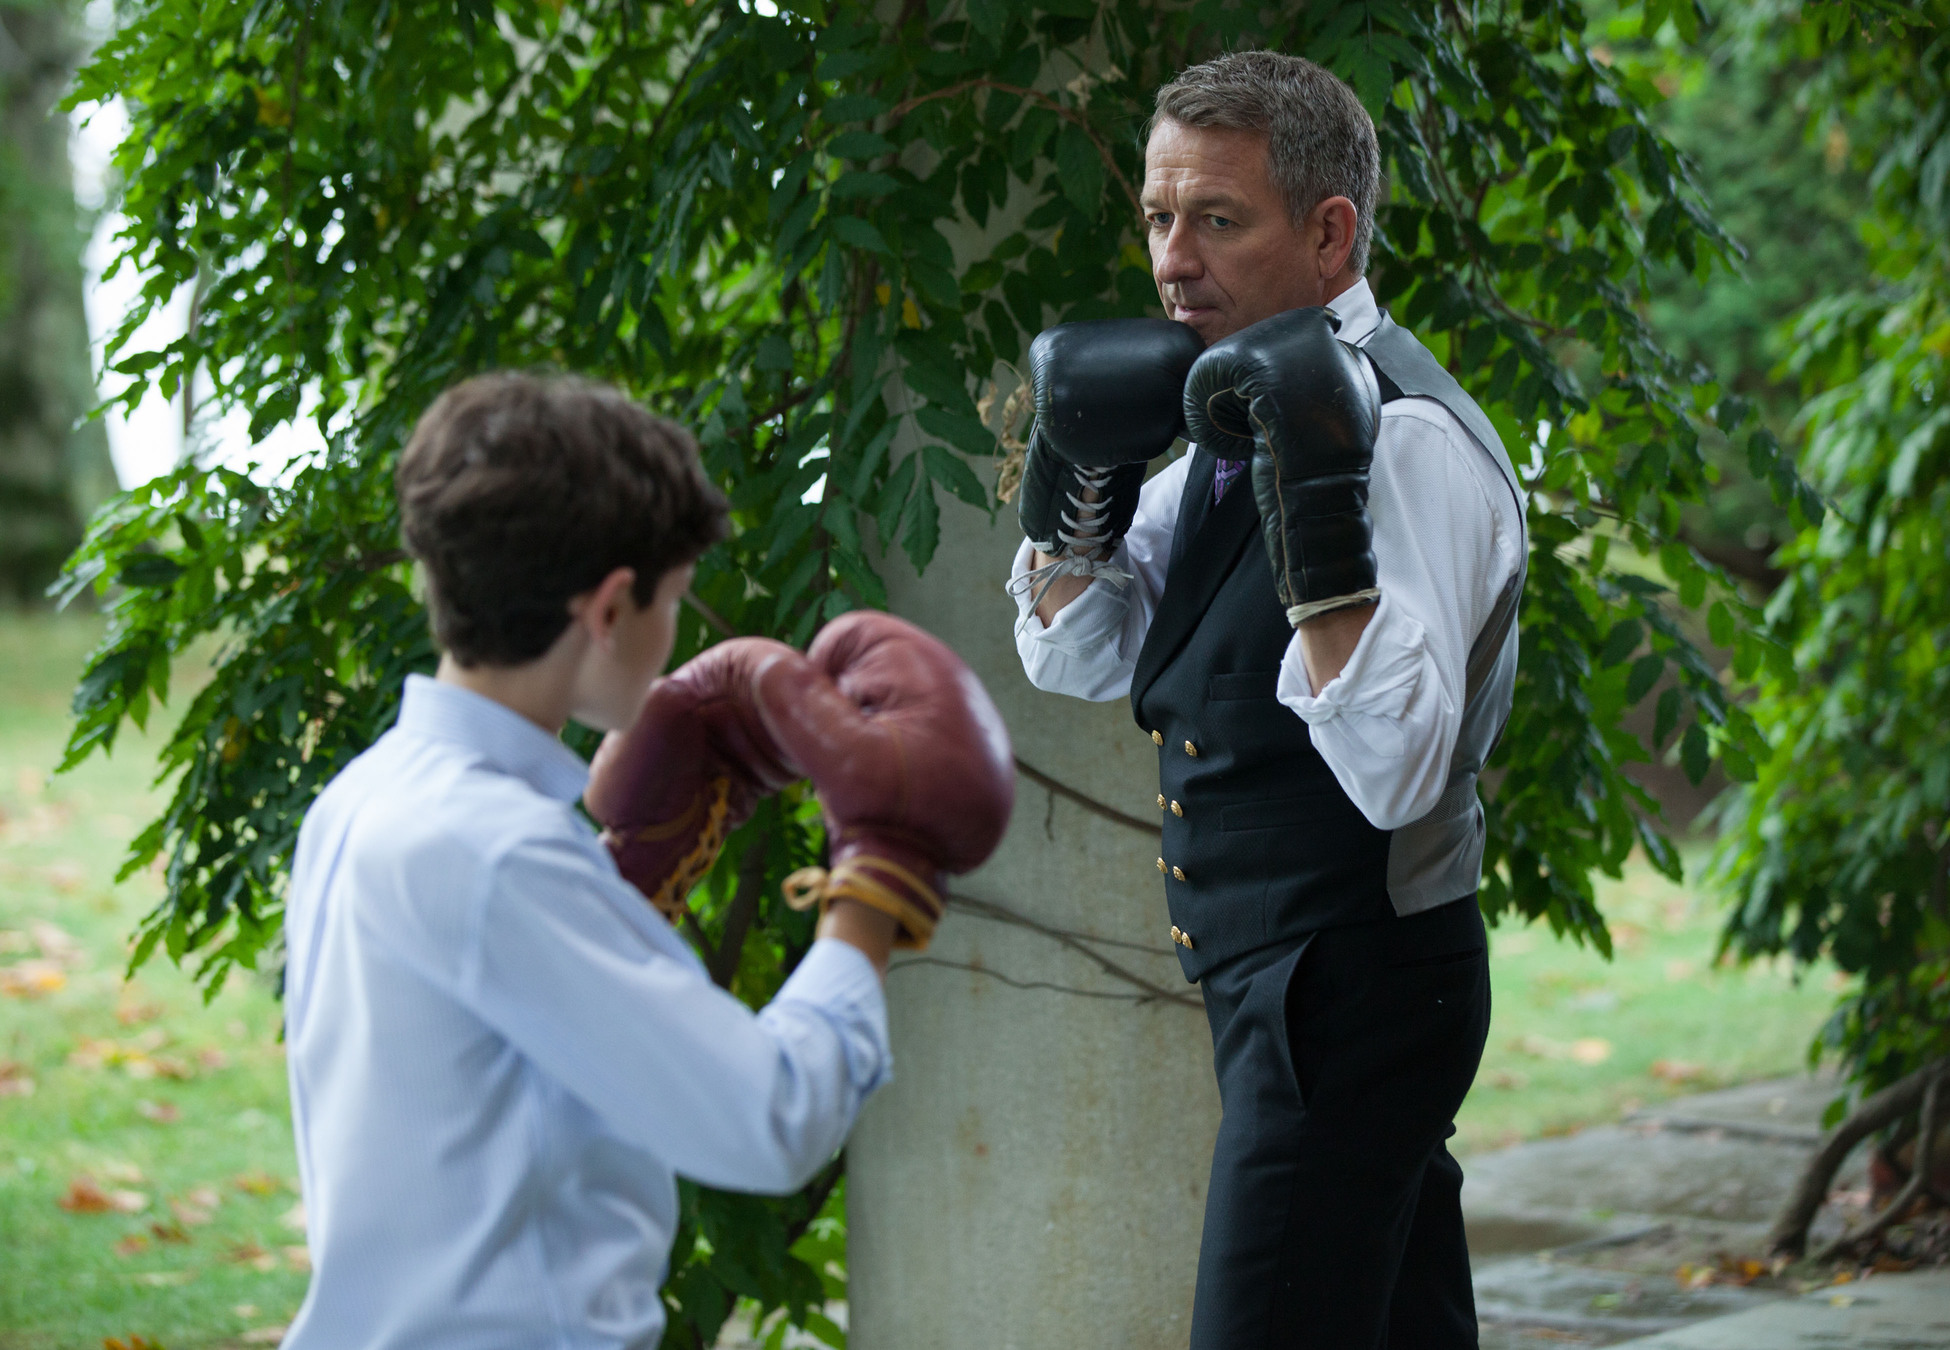 """GOTHAM: Alfred (Sean Pertwee, R) gives Bruce (David Mazouz, L) a lesson on fighting in the """"Harvey Dent"""" episode of GOTHAM airing Monday, Nov. 17 (8:00-9:00 PM ET/PT) on FOX. ©2014 Fox Broadcasting Co. Cr: Jessica Miglio/FOX"""